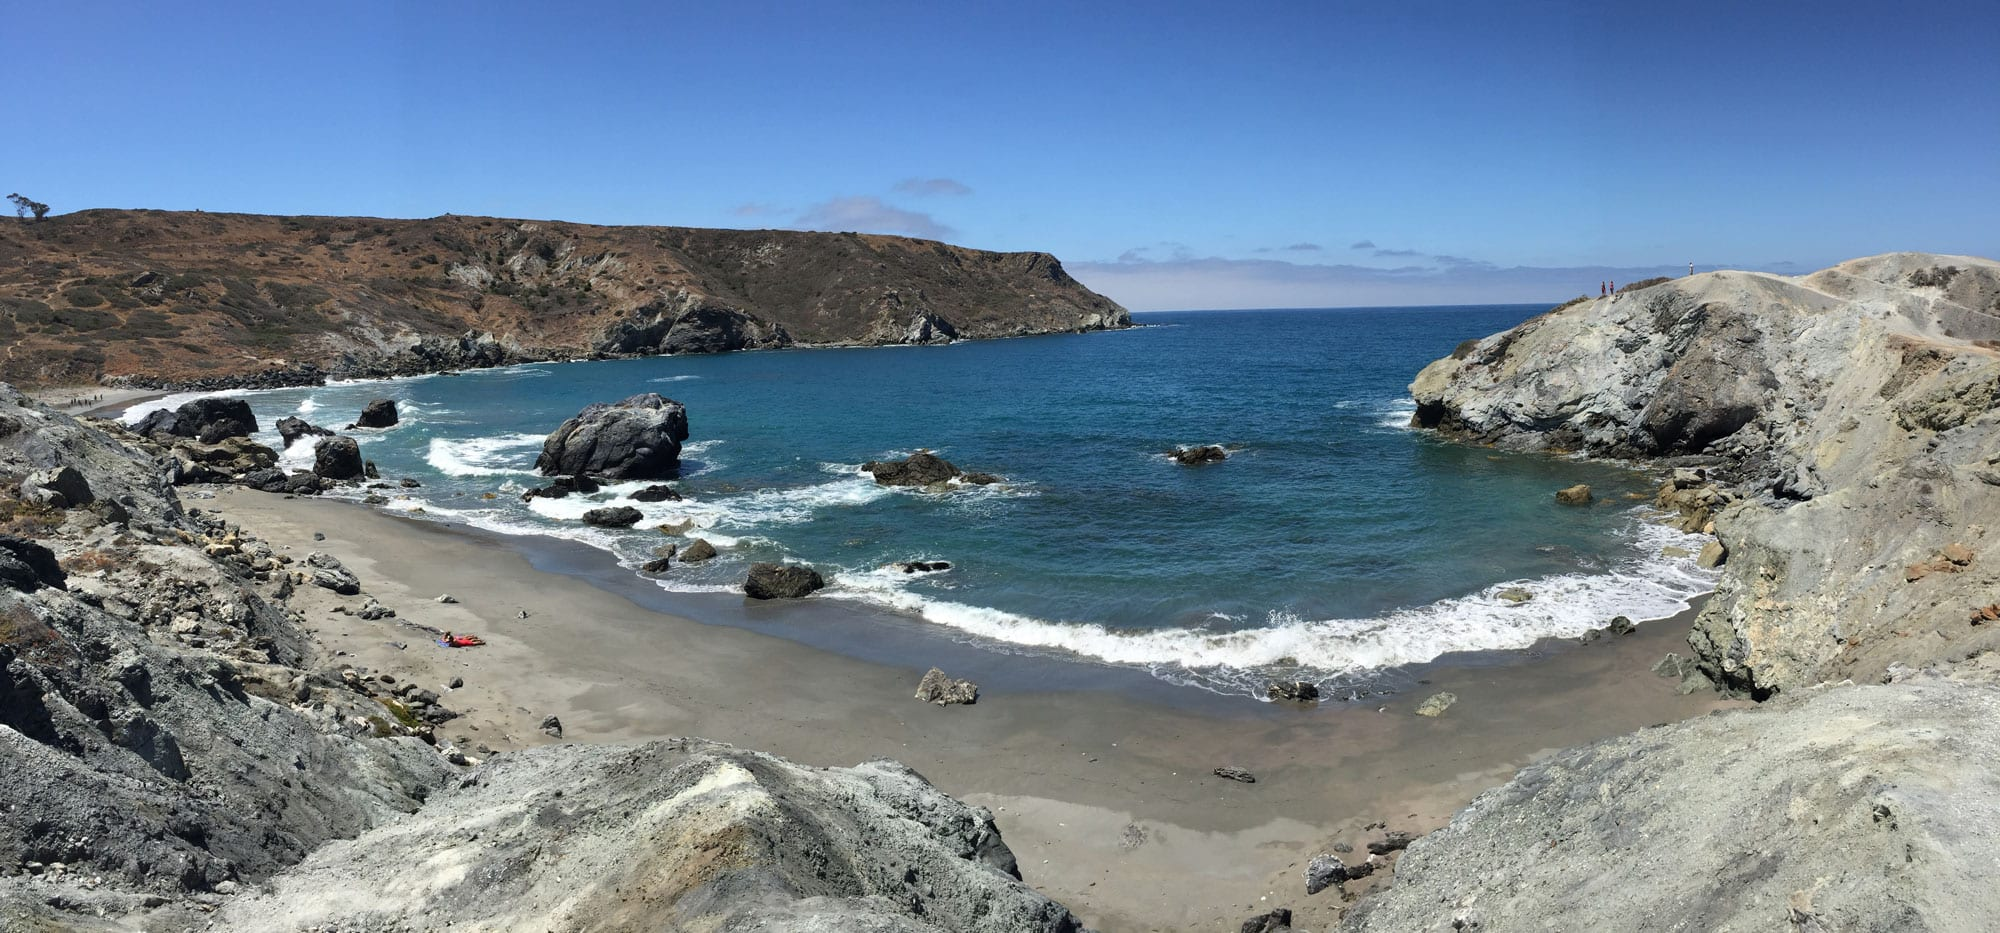 Shark Harbor on Catalina Island / Plan a backpacking trip on the Trans-Catalina Trail on Catalina Island with this trail guide with tips on the best campsites, water availability, gear & more